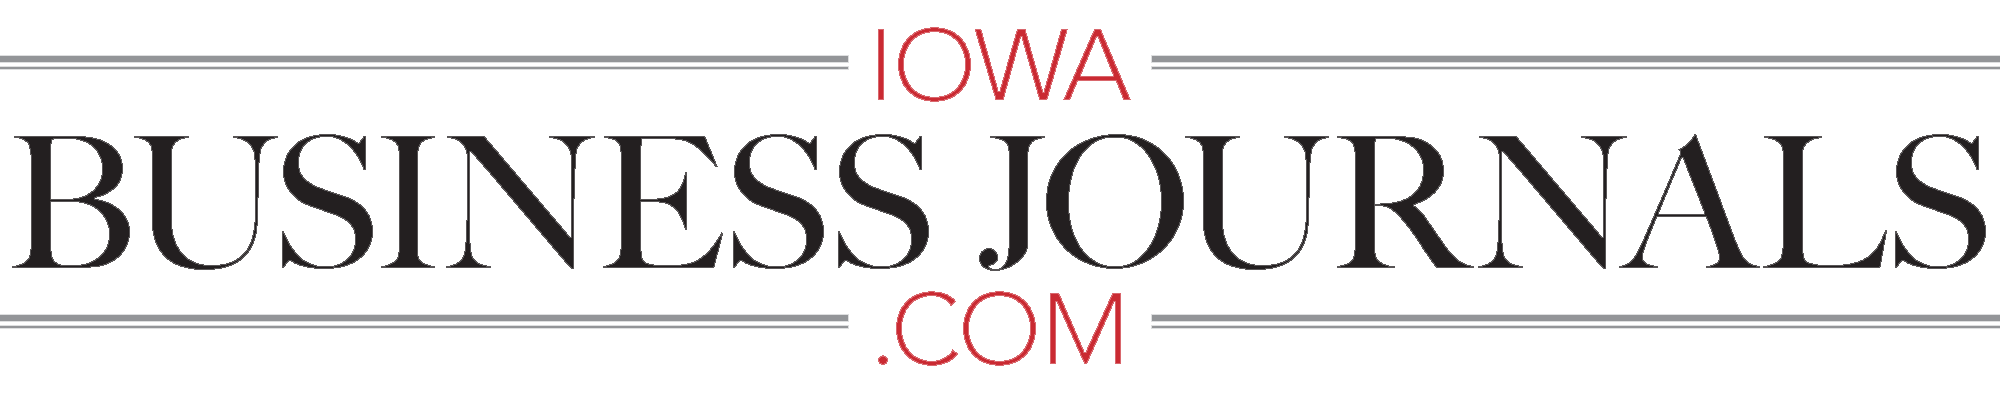 Iowa Business Journals